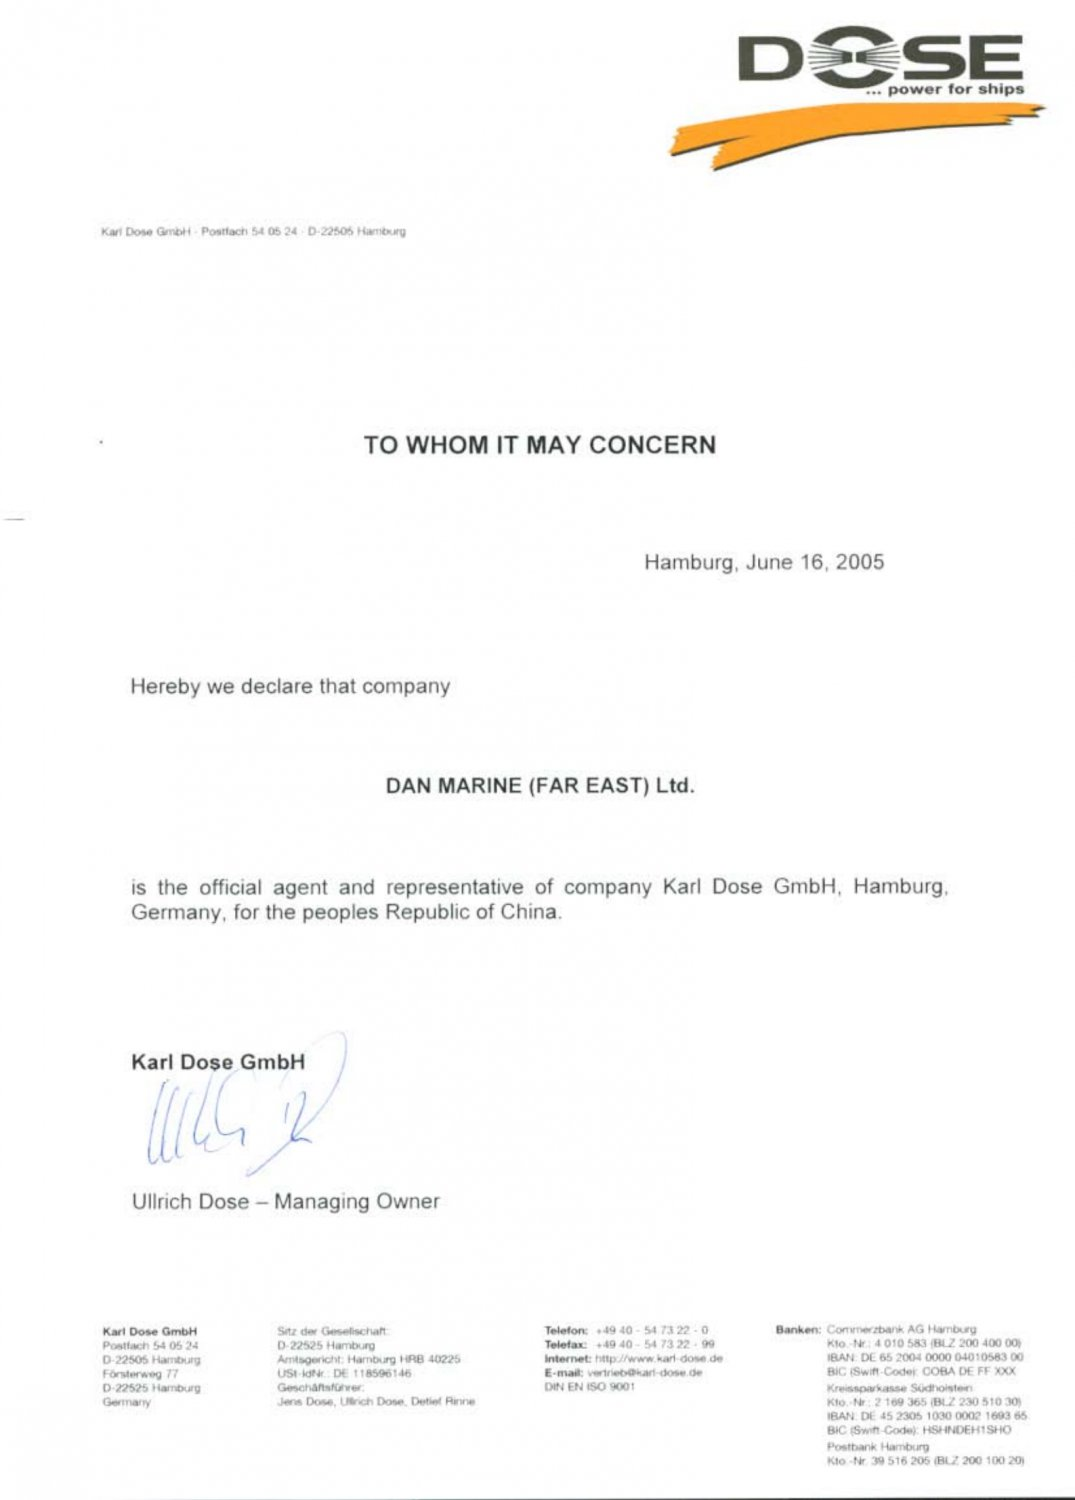 Authorized Letter from DOSE to DMFE_00